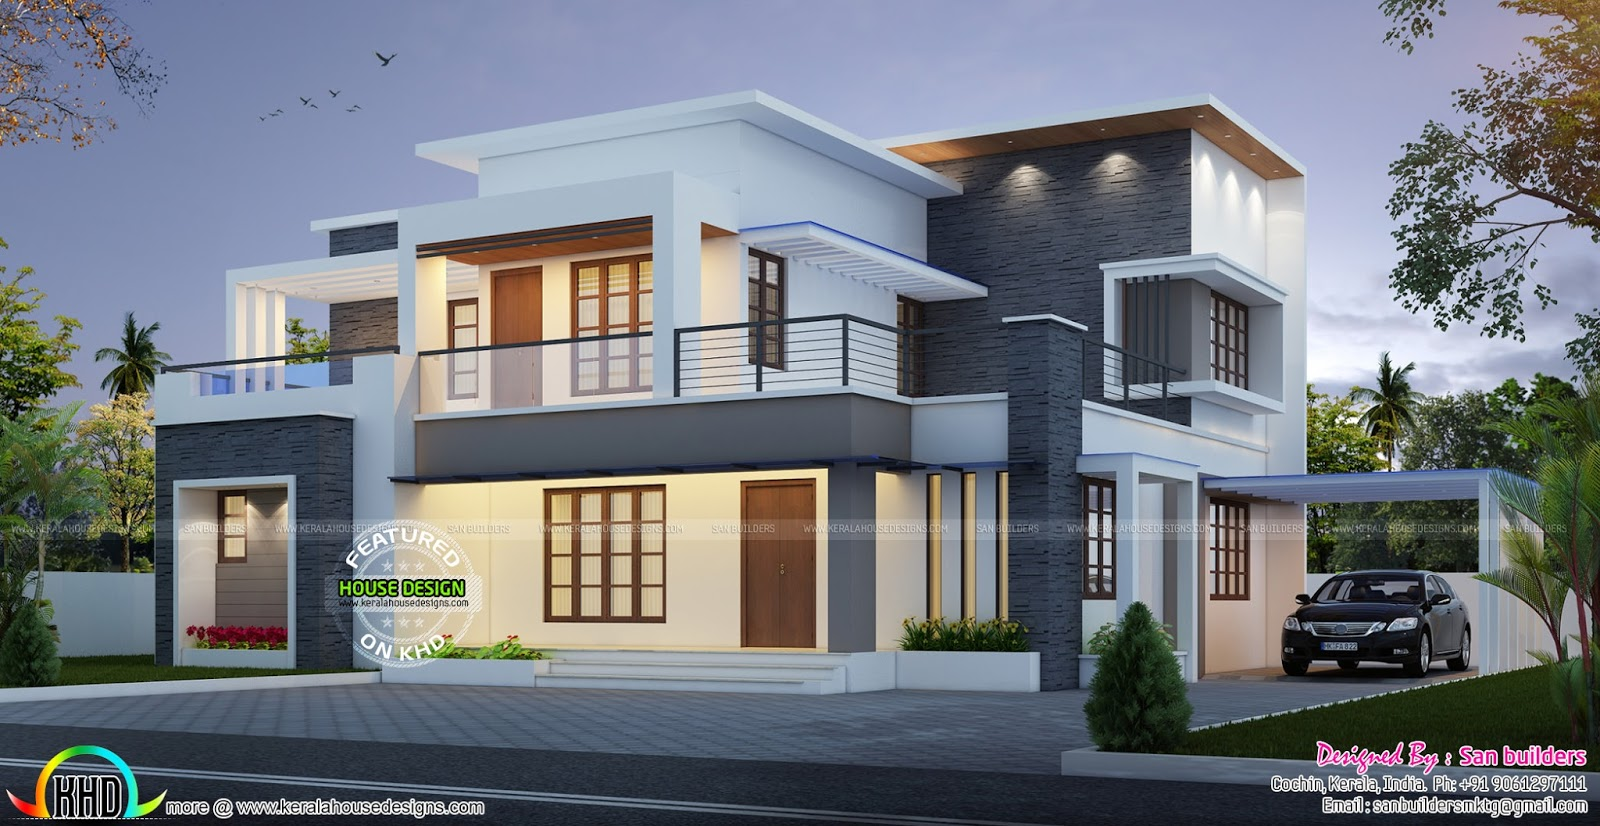 House plan and elevation by san builders kerala home for Modern house design 2016